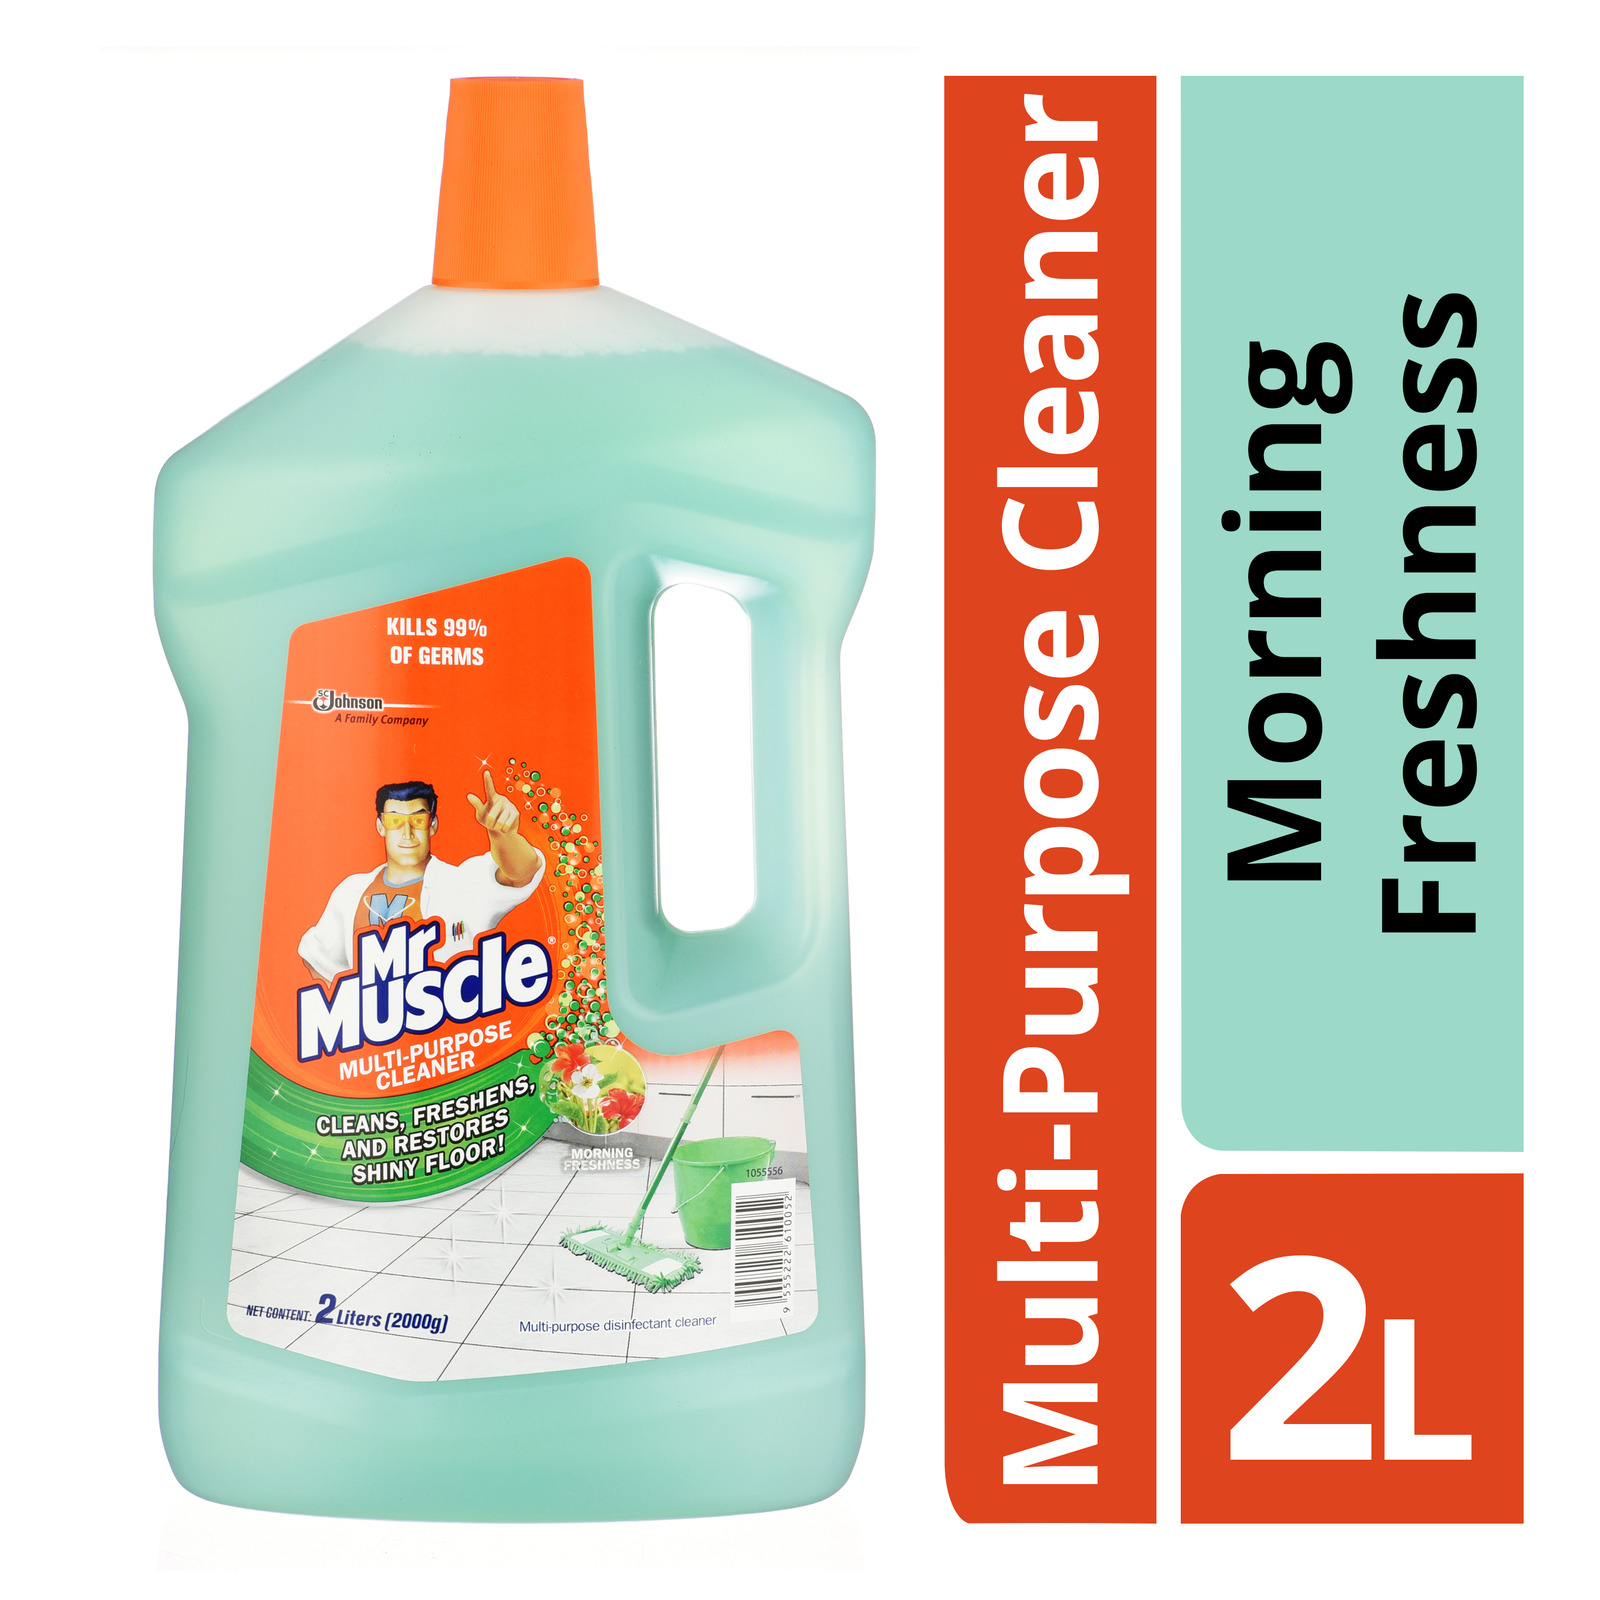 Mr Muscle Multi-Purpose Cleaner - Morning Freshness